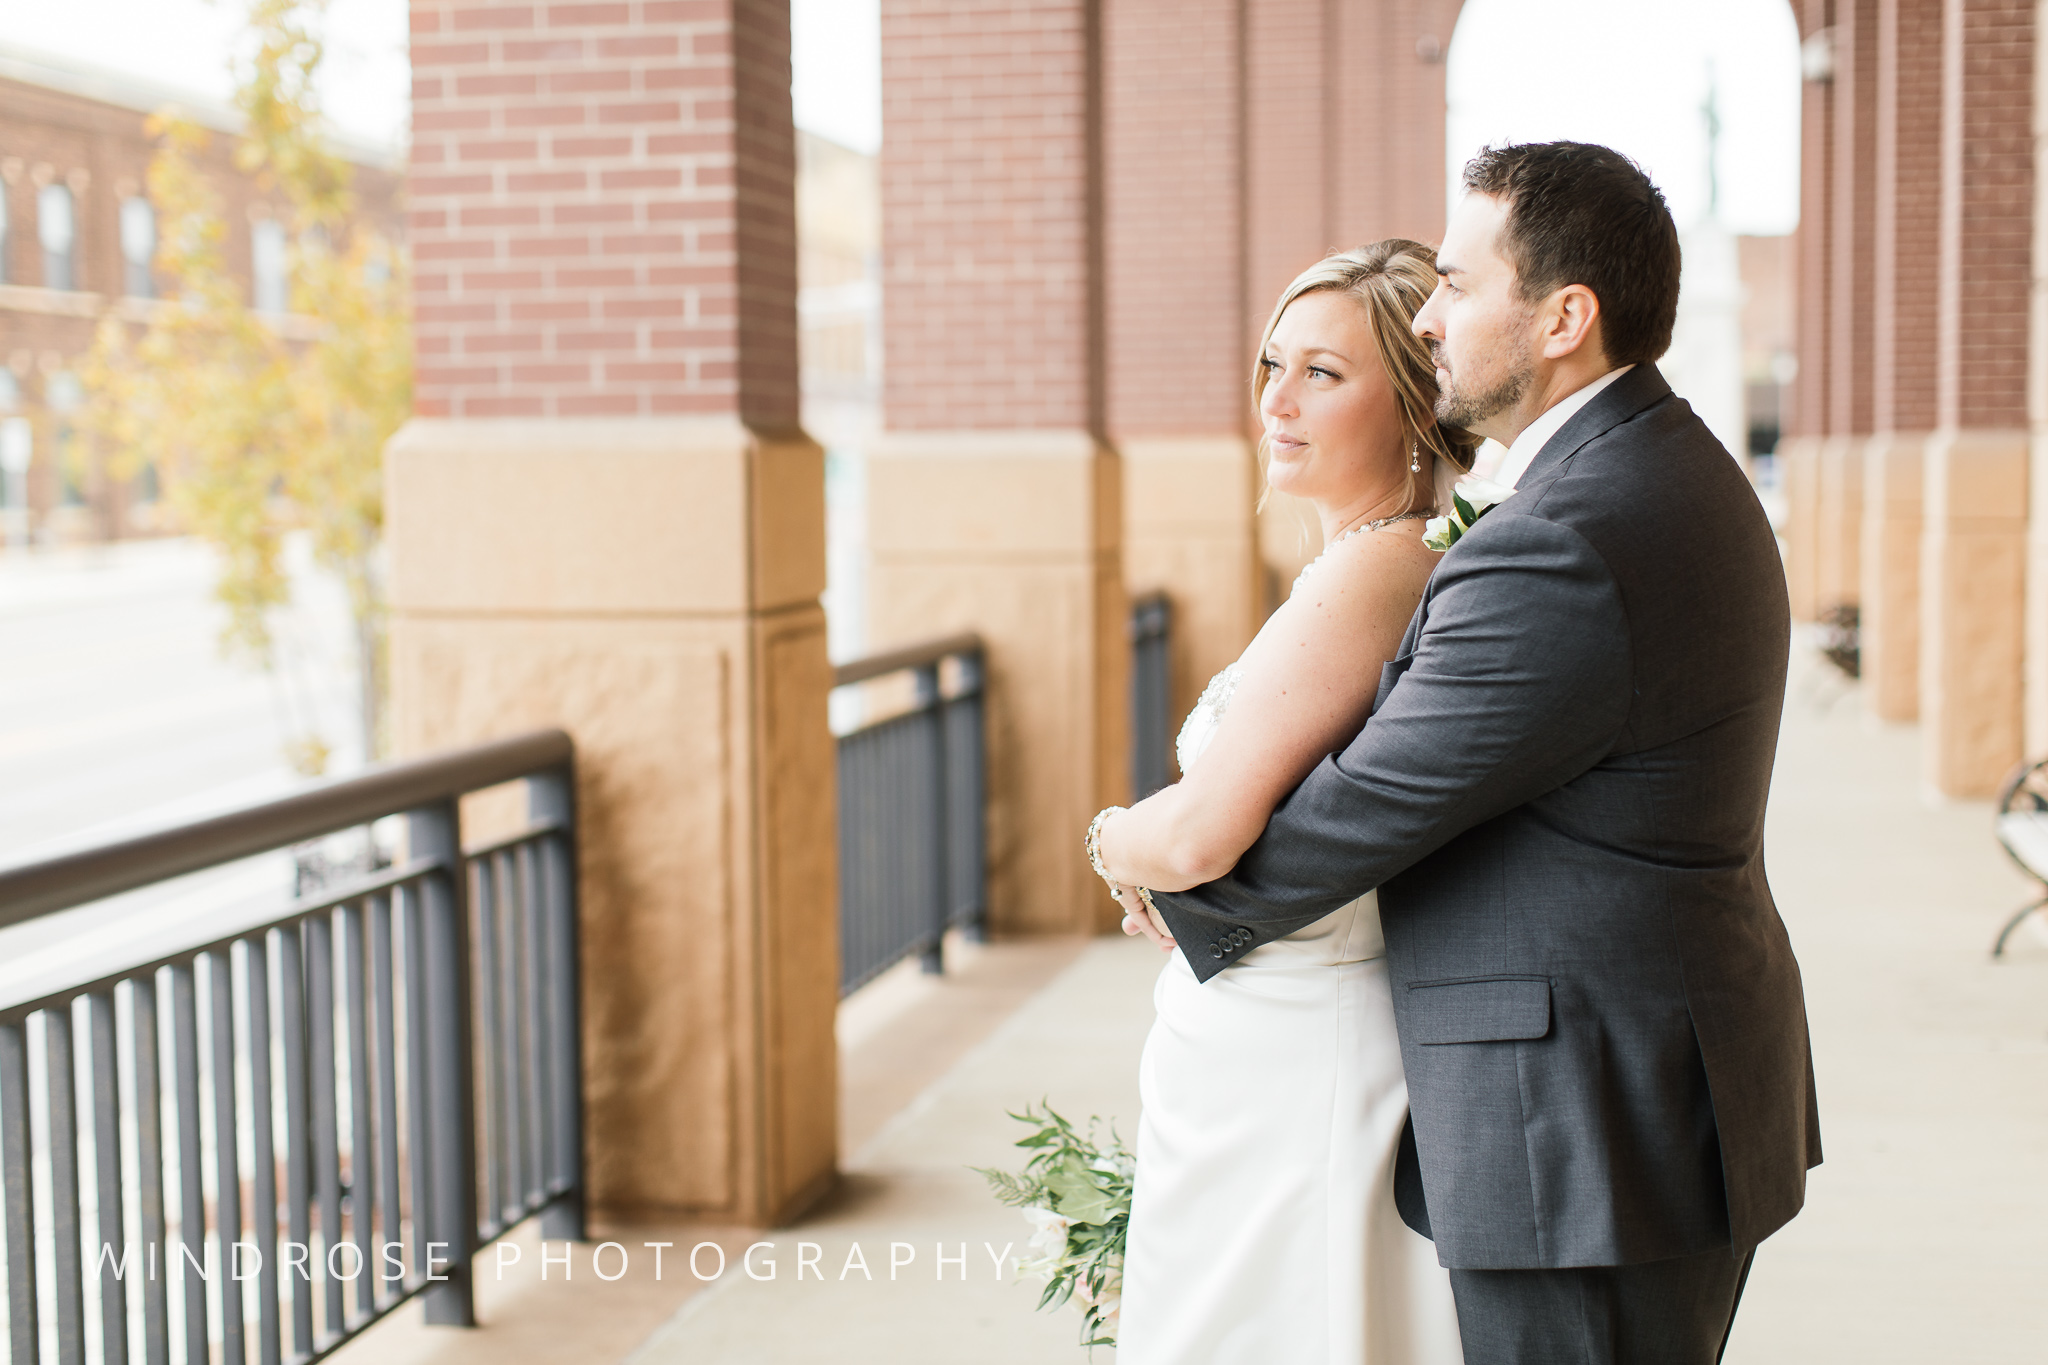 Albert-Lea-Edgewater-Bay-Pavilion-Minnesota-Wedding-Photographer-19.jpg